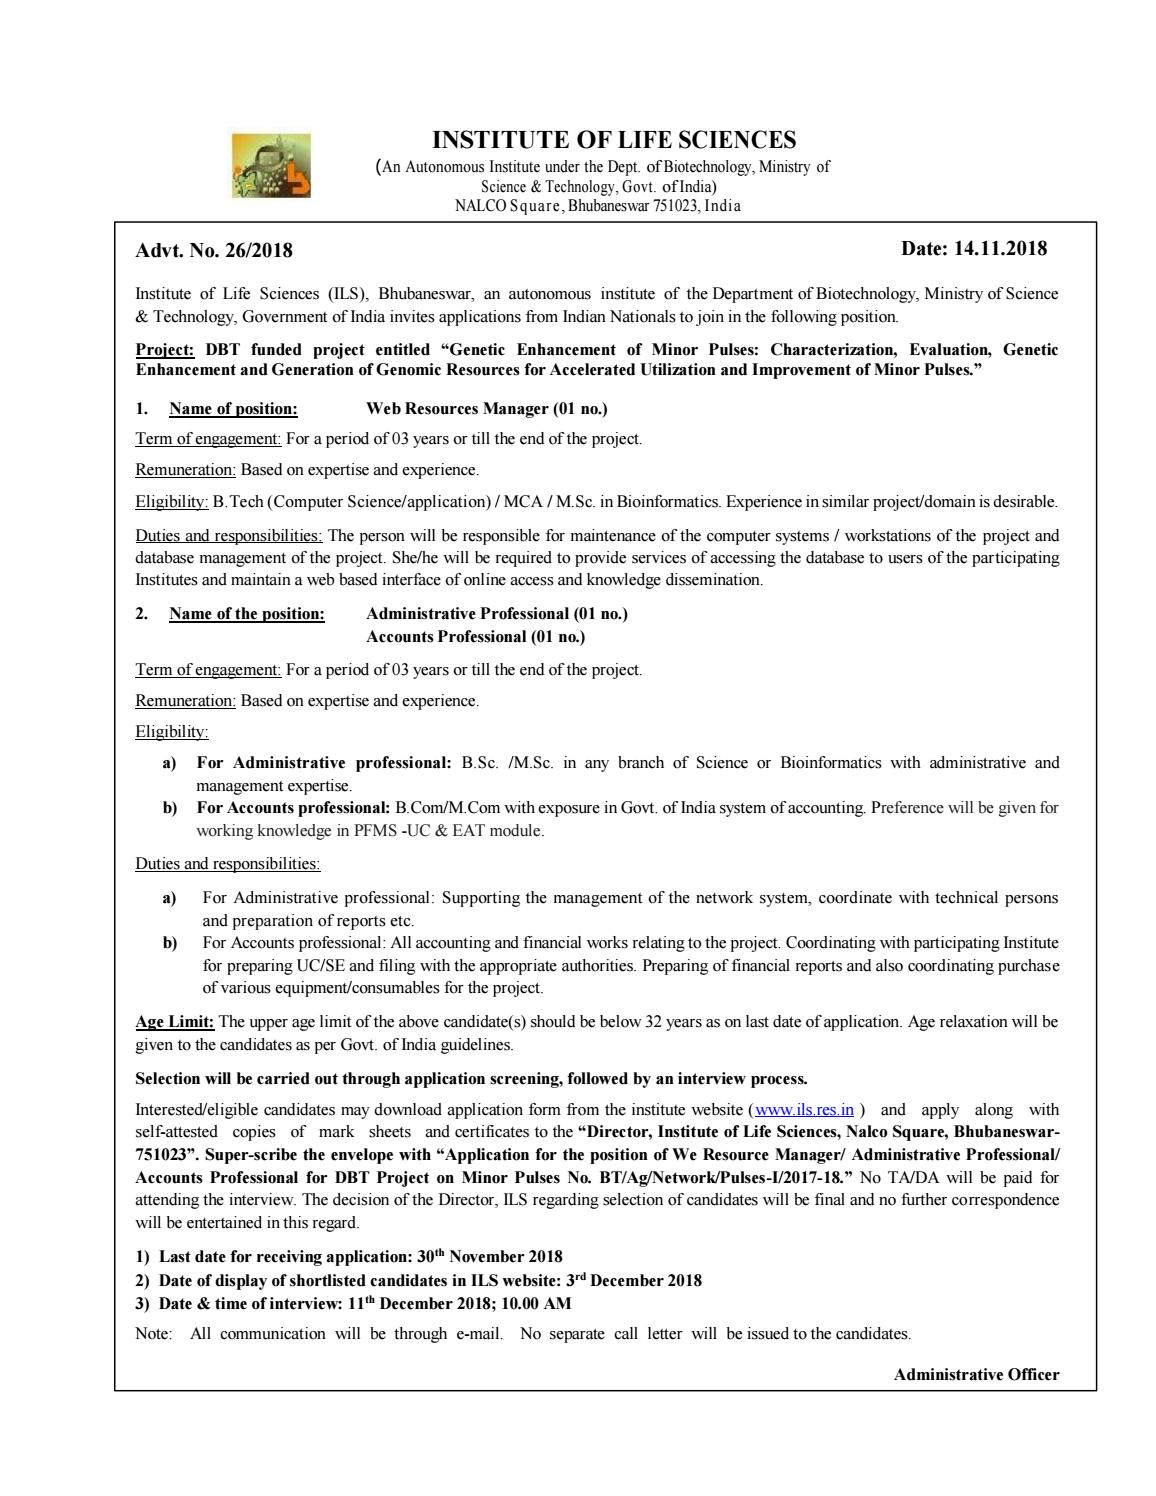 DBT Funded MSc Bioinformatics Resources Manager Post